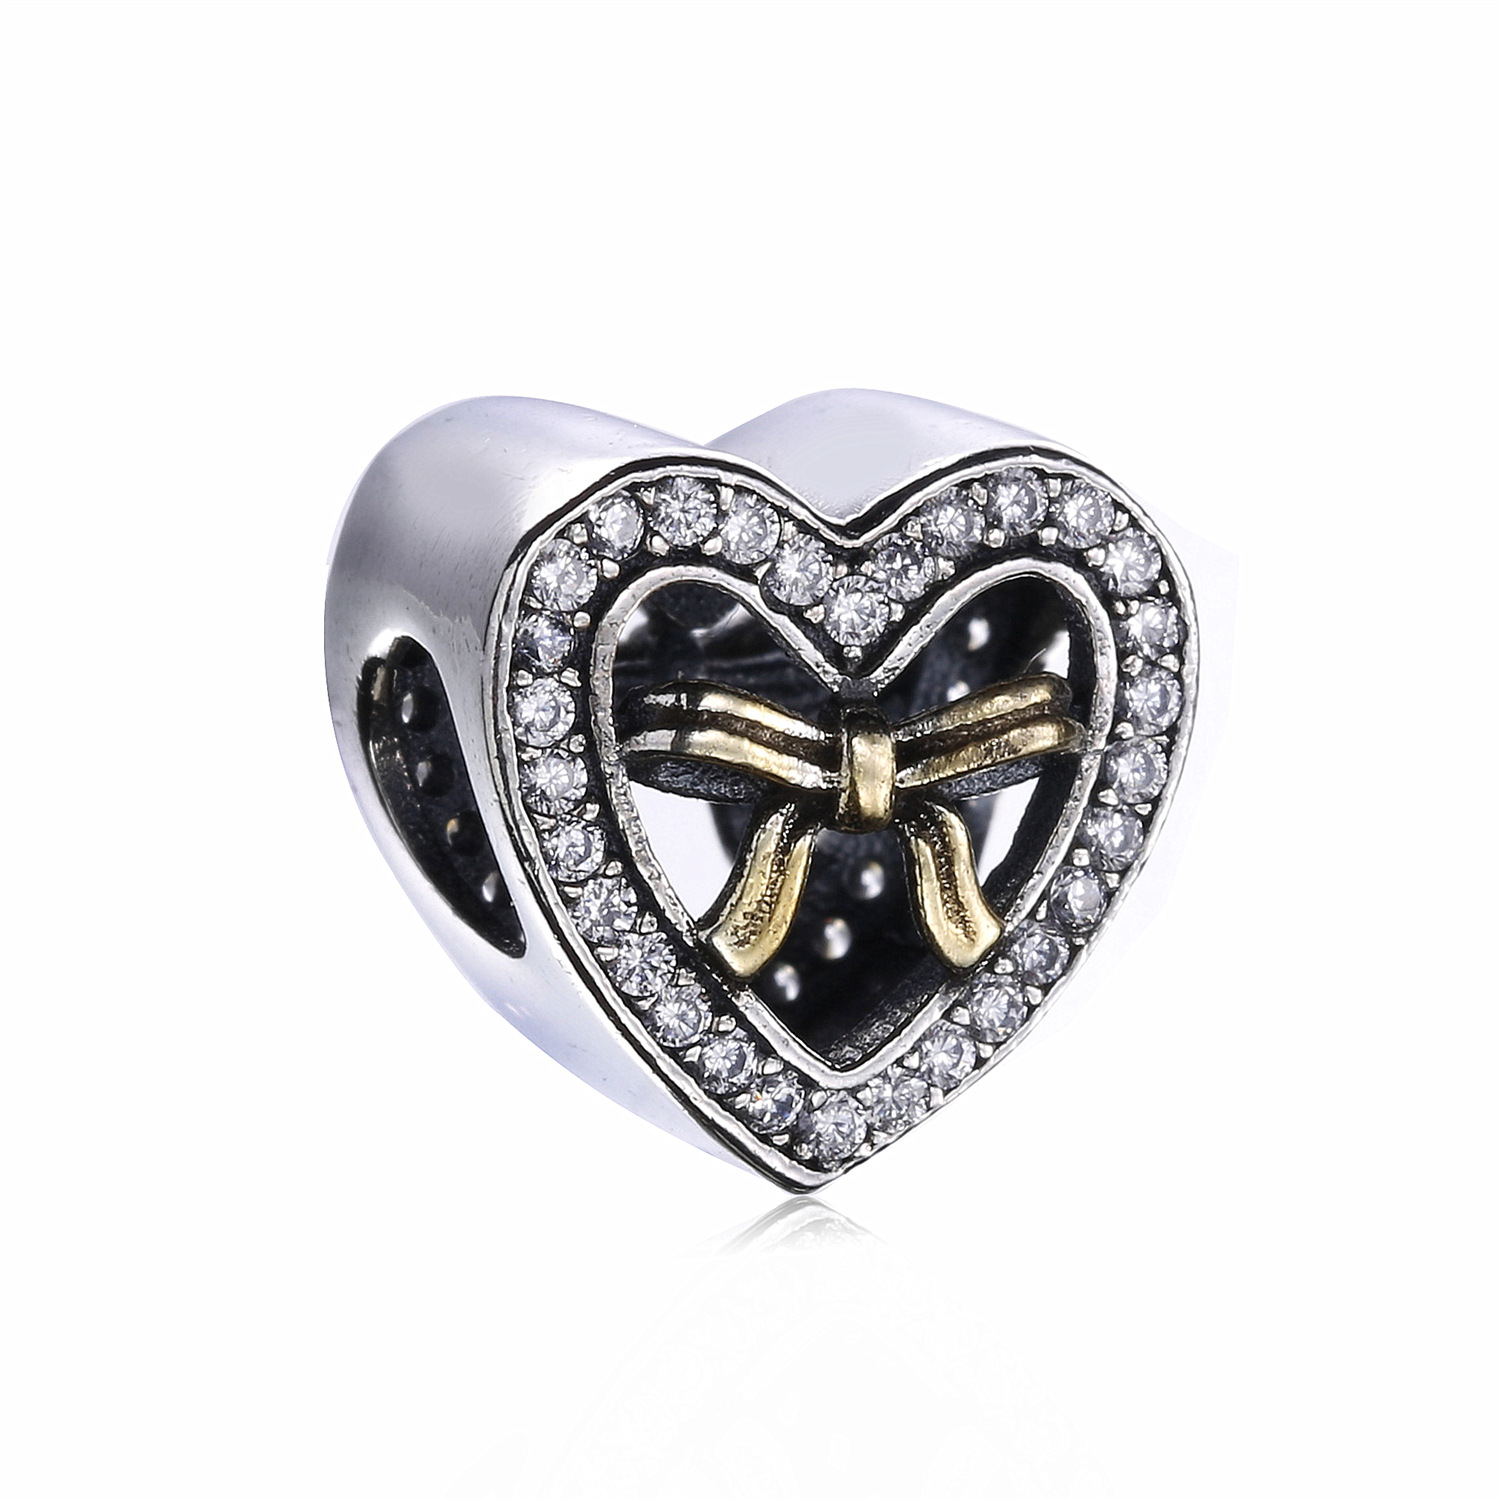 Authentic 925 Sterling Silver Bound By Love Charm Beads Fit Original Pandora Bracelet Authentic Luxury Diy Jewelry Making